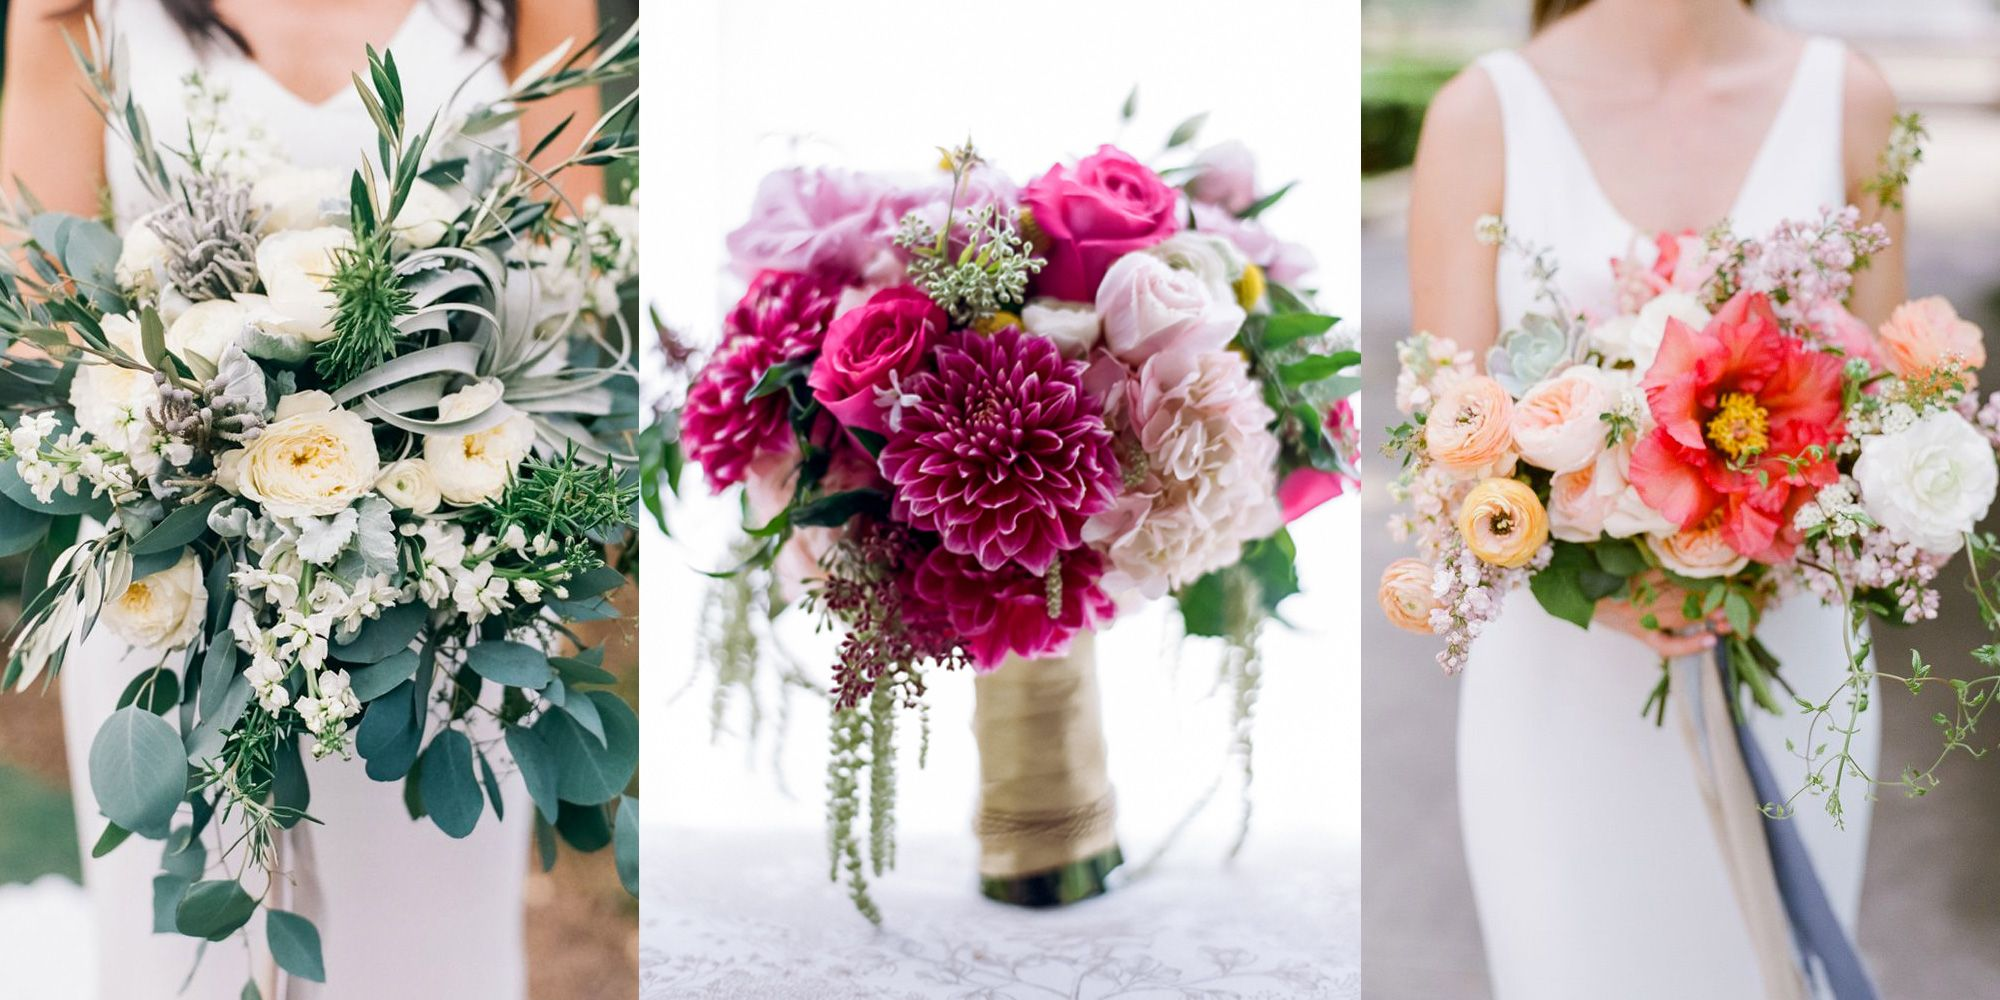 ideas for you to choose lilies wedding bouquet 12 - Ideas for You to Choose Lilies Wedding Bouquet